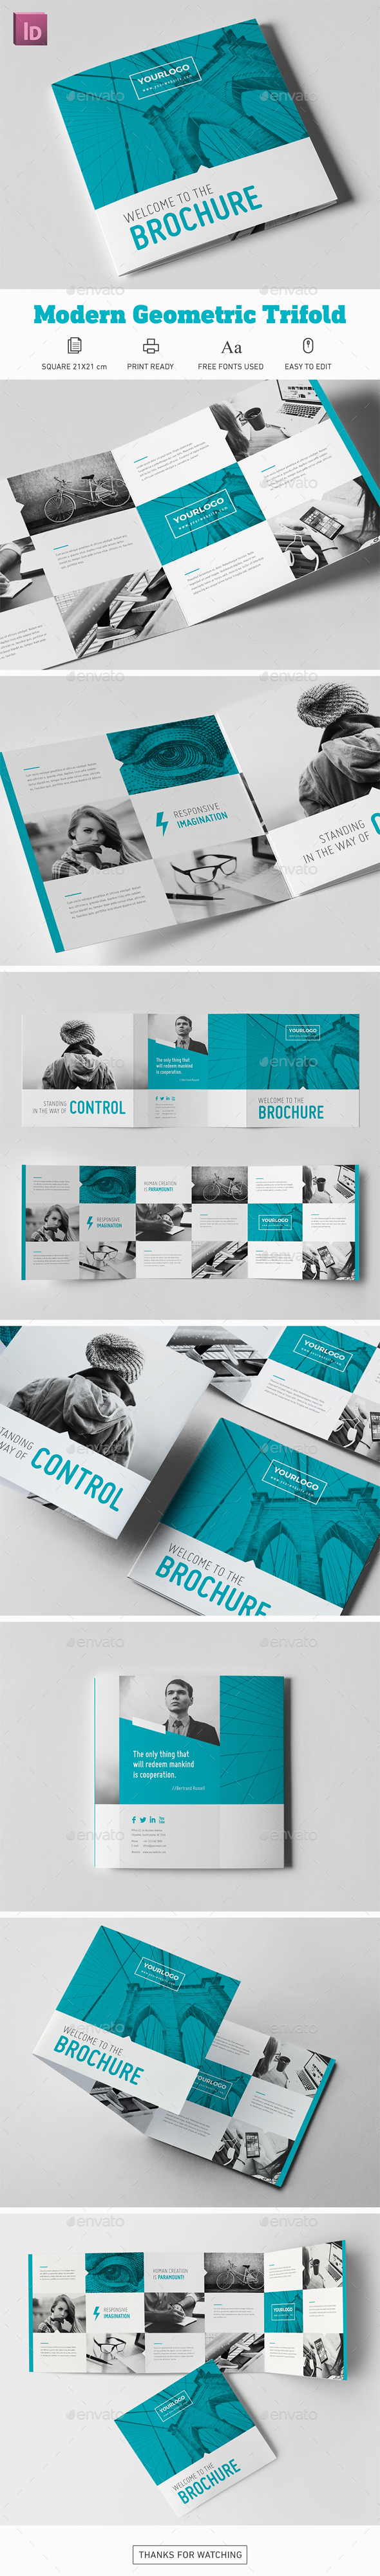 Modern Geometric Square Trifold Brochure - Corporate Brochures